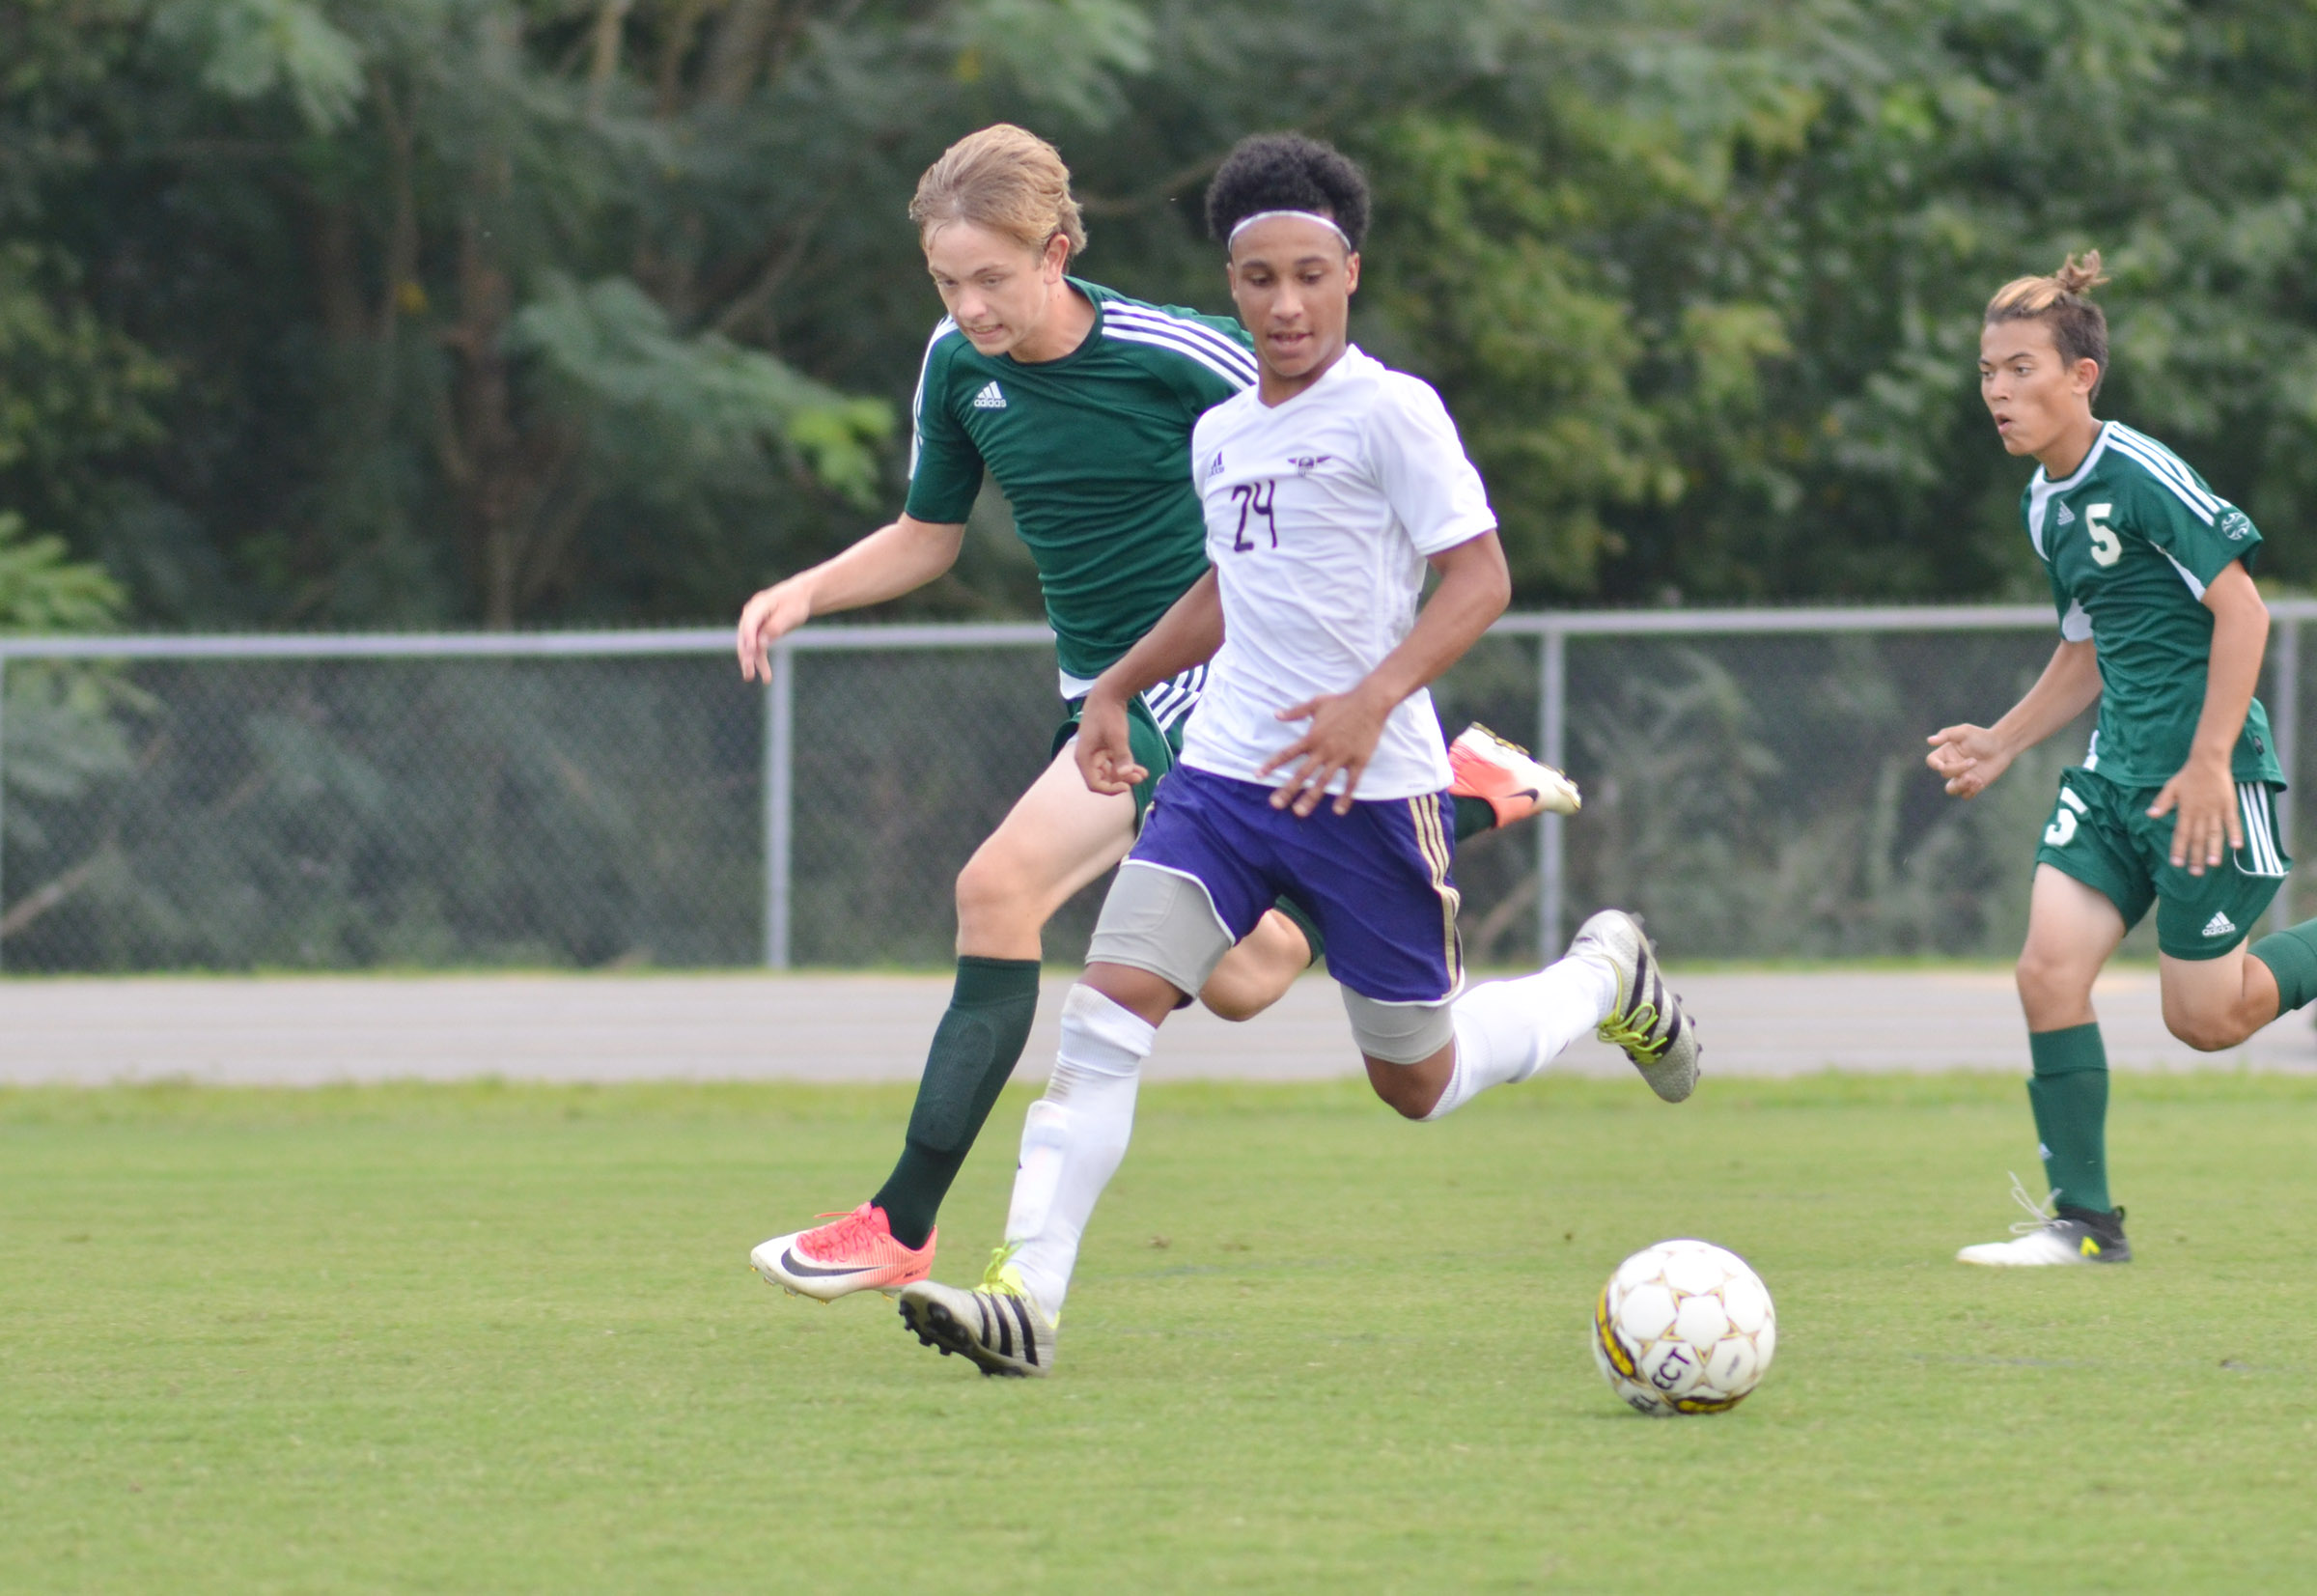 CHS junior Daniel Johnson runs toward the goal.